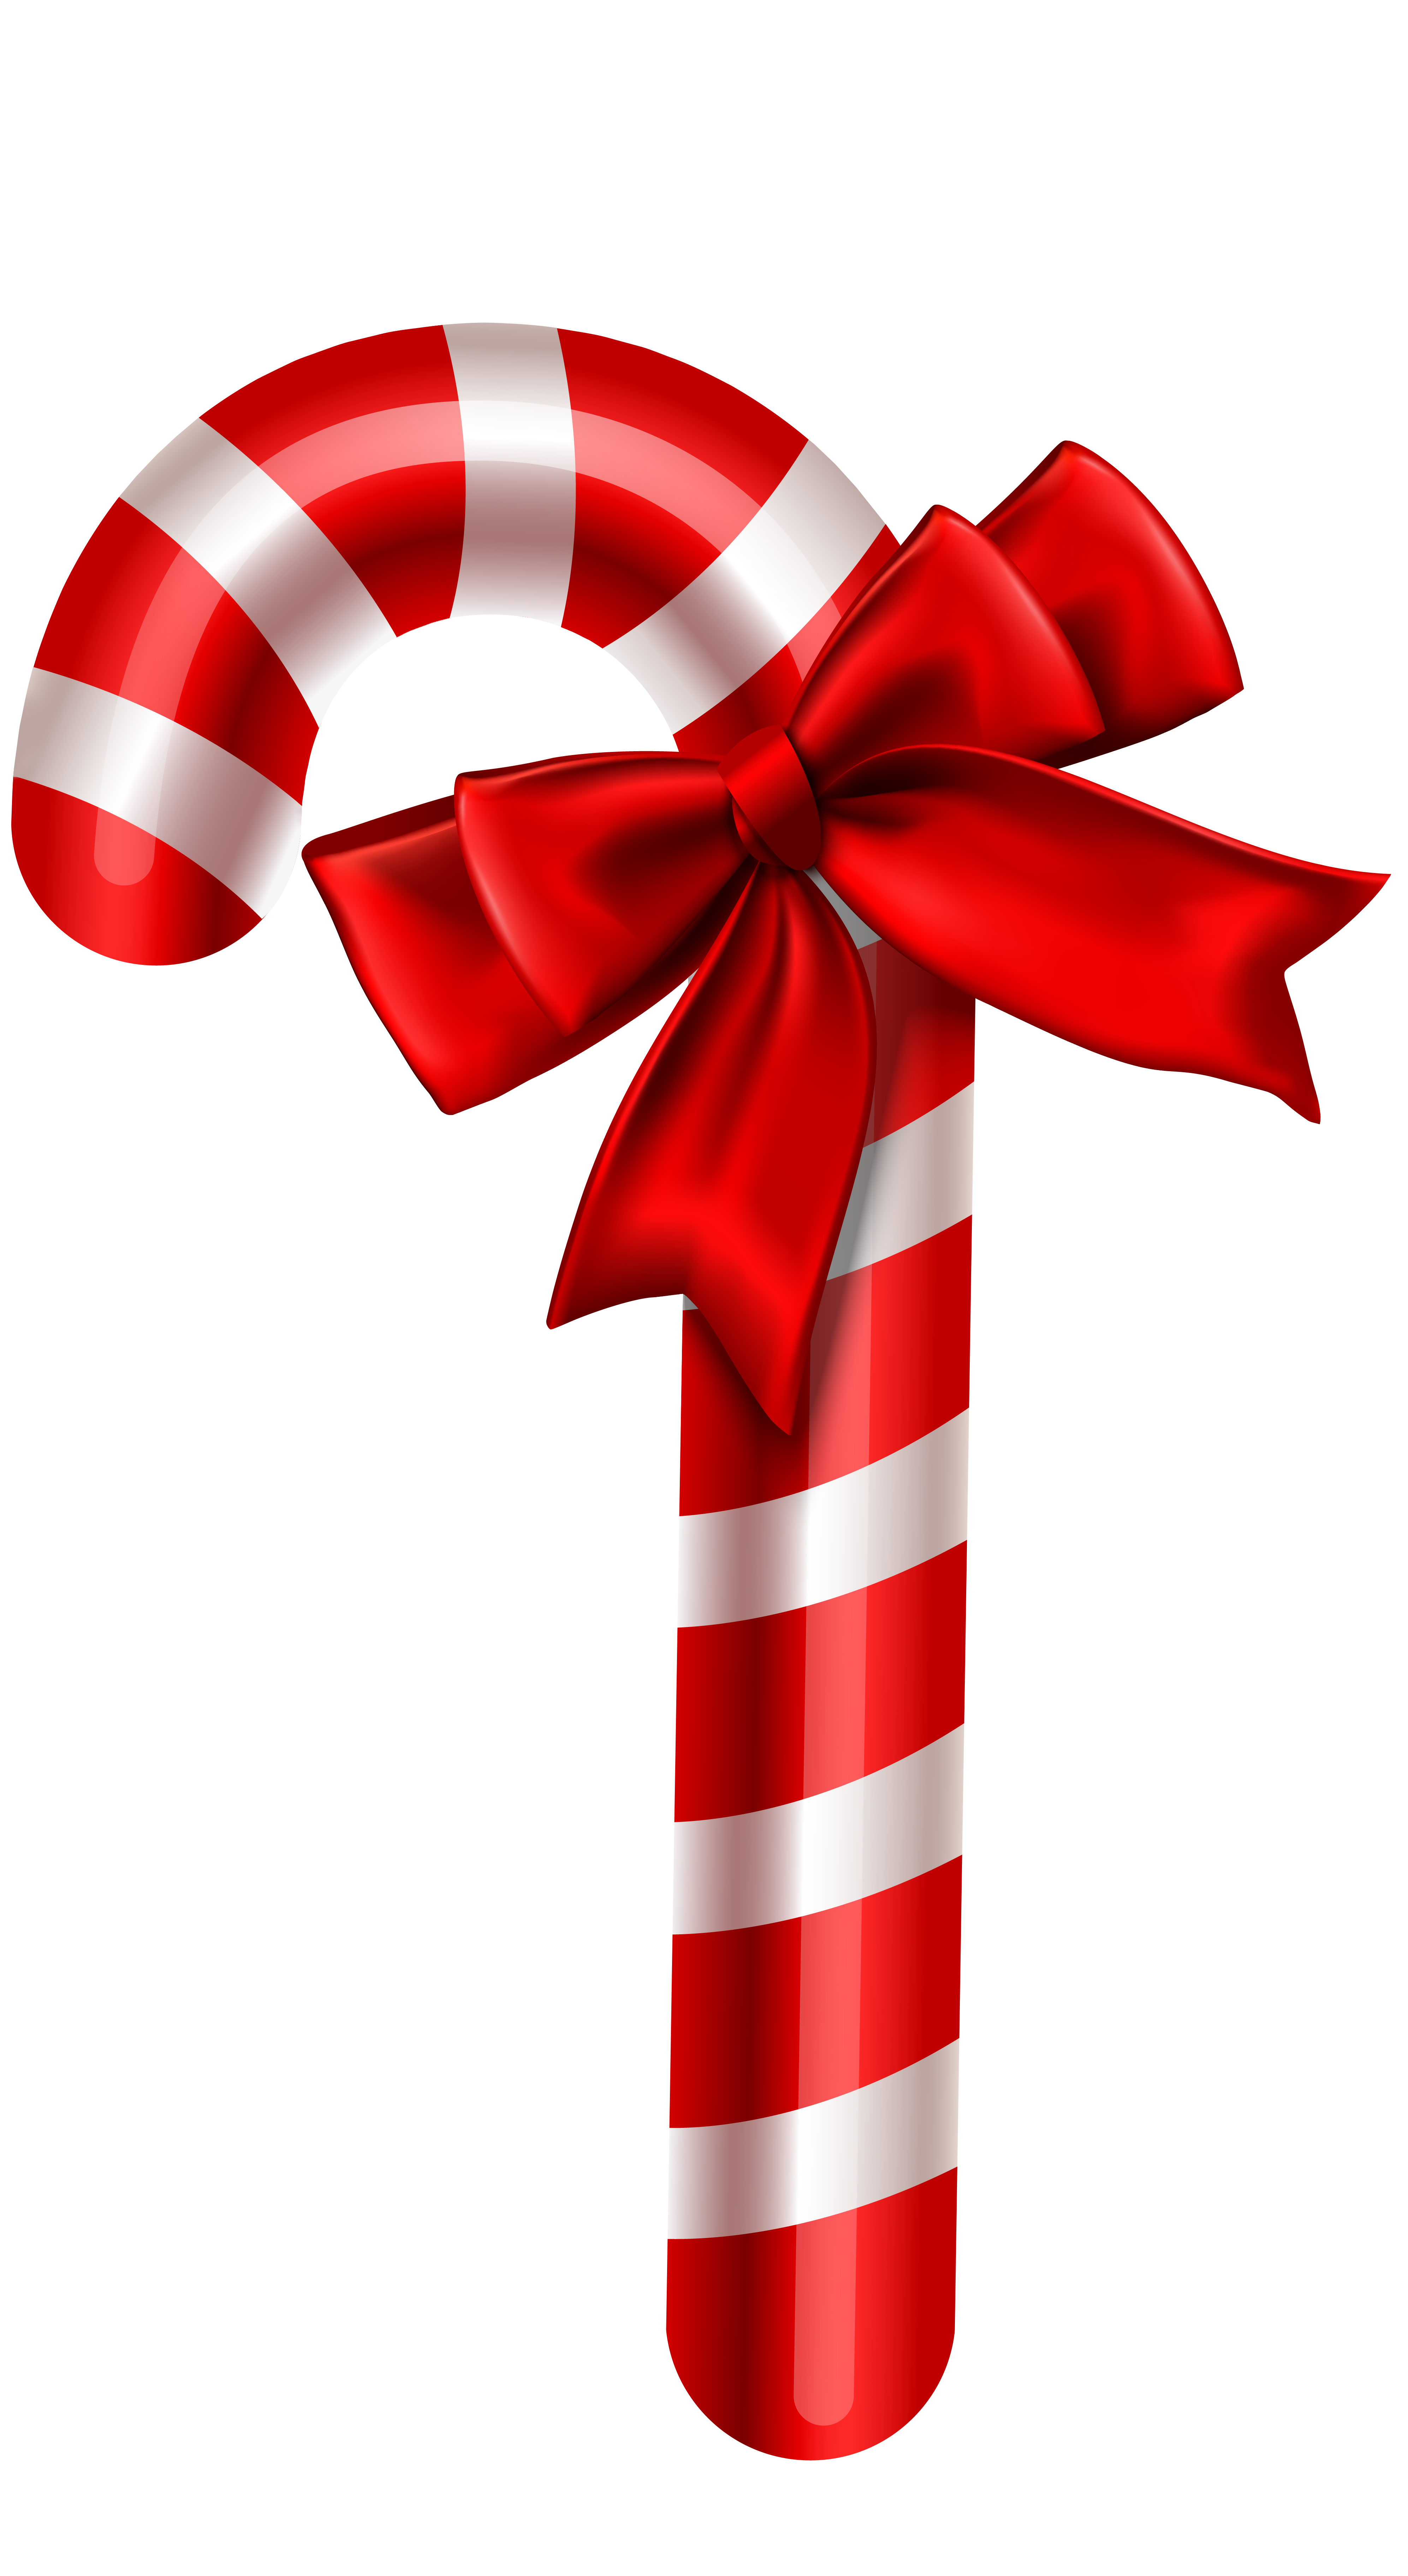 Lollipop Candy Png Clipart Candies Candy Candy Border Candy Cane Cartoon Free Png Download Lollipop Candy Lollipop Paper Flowers